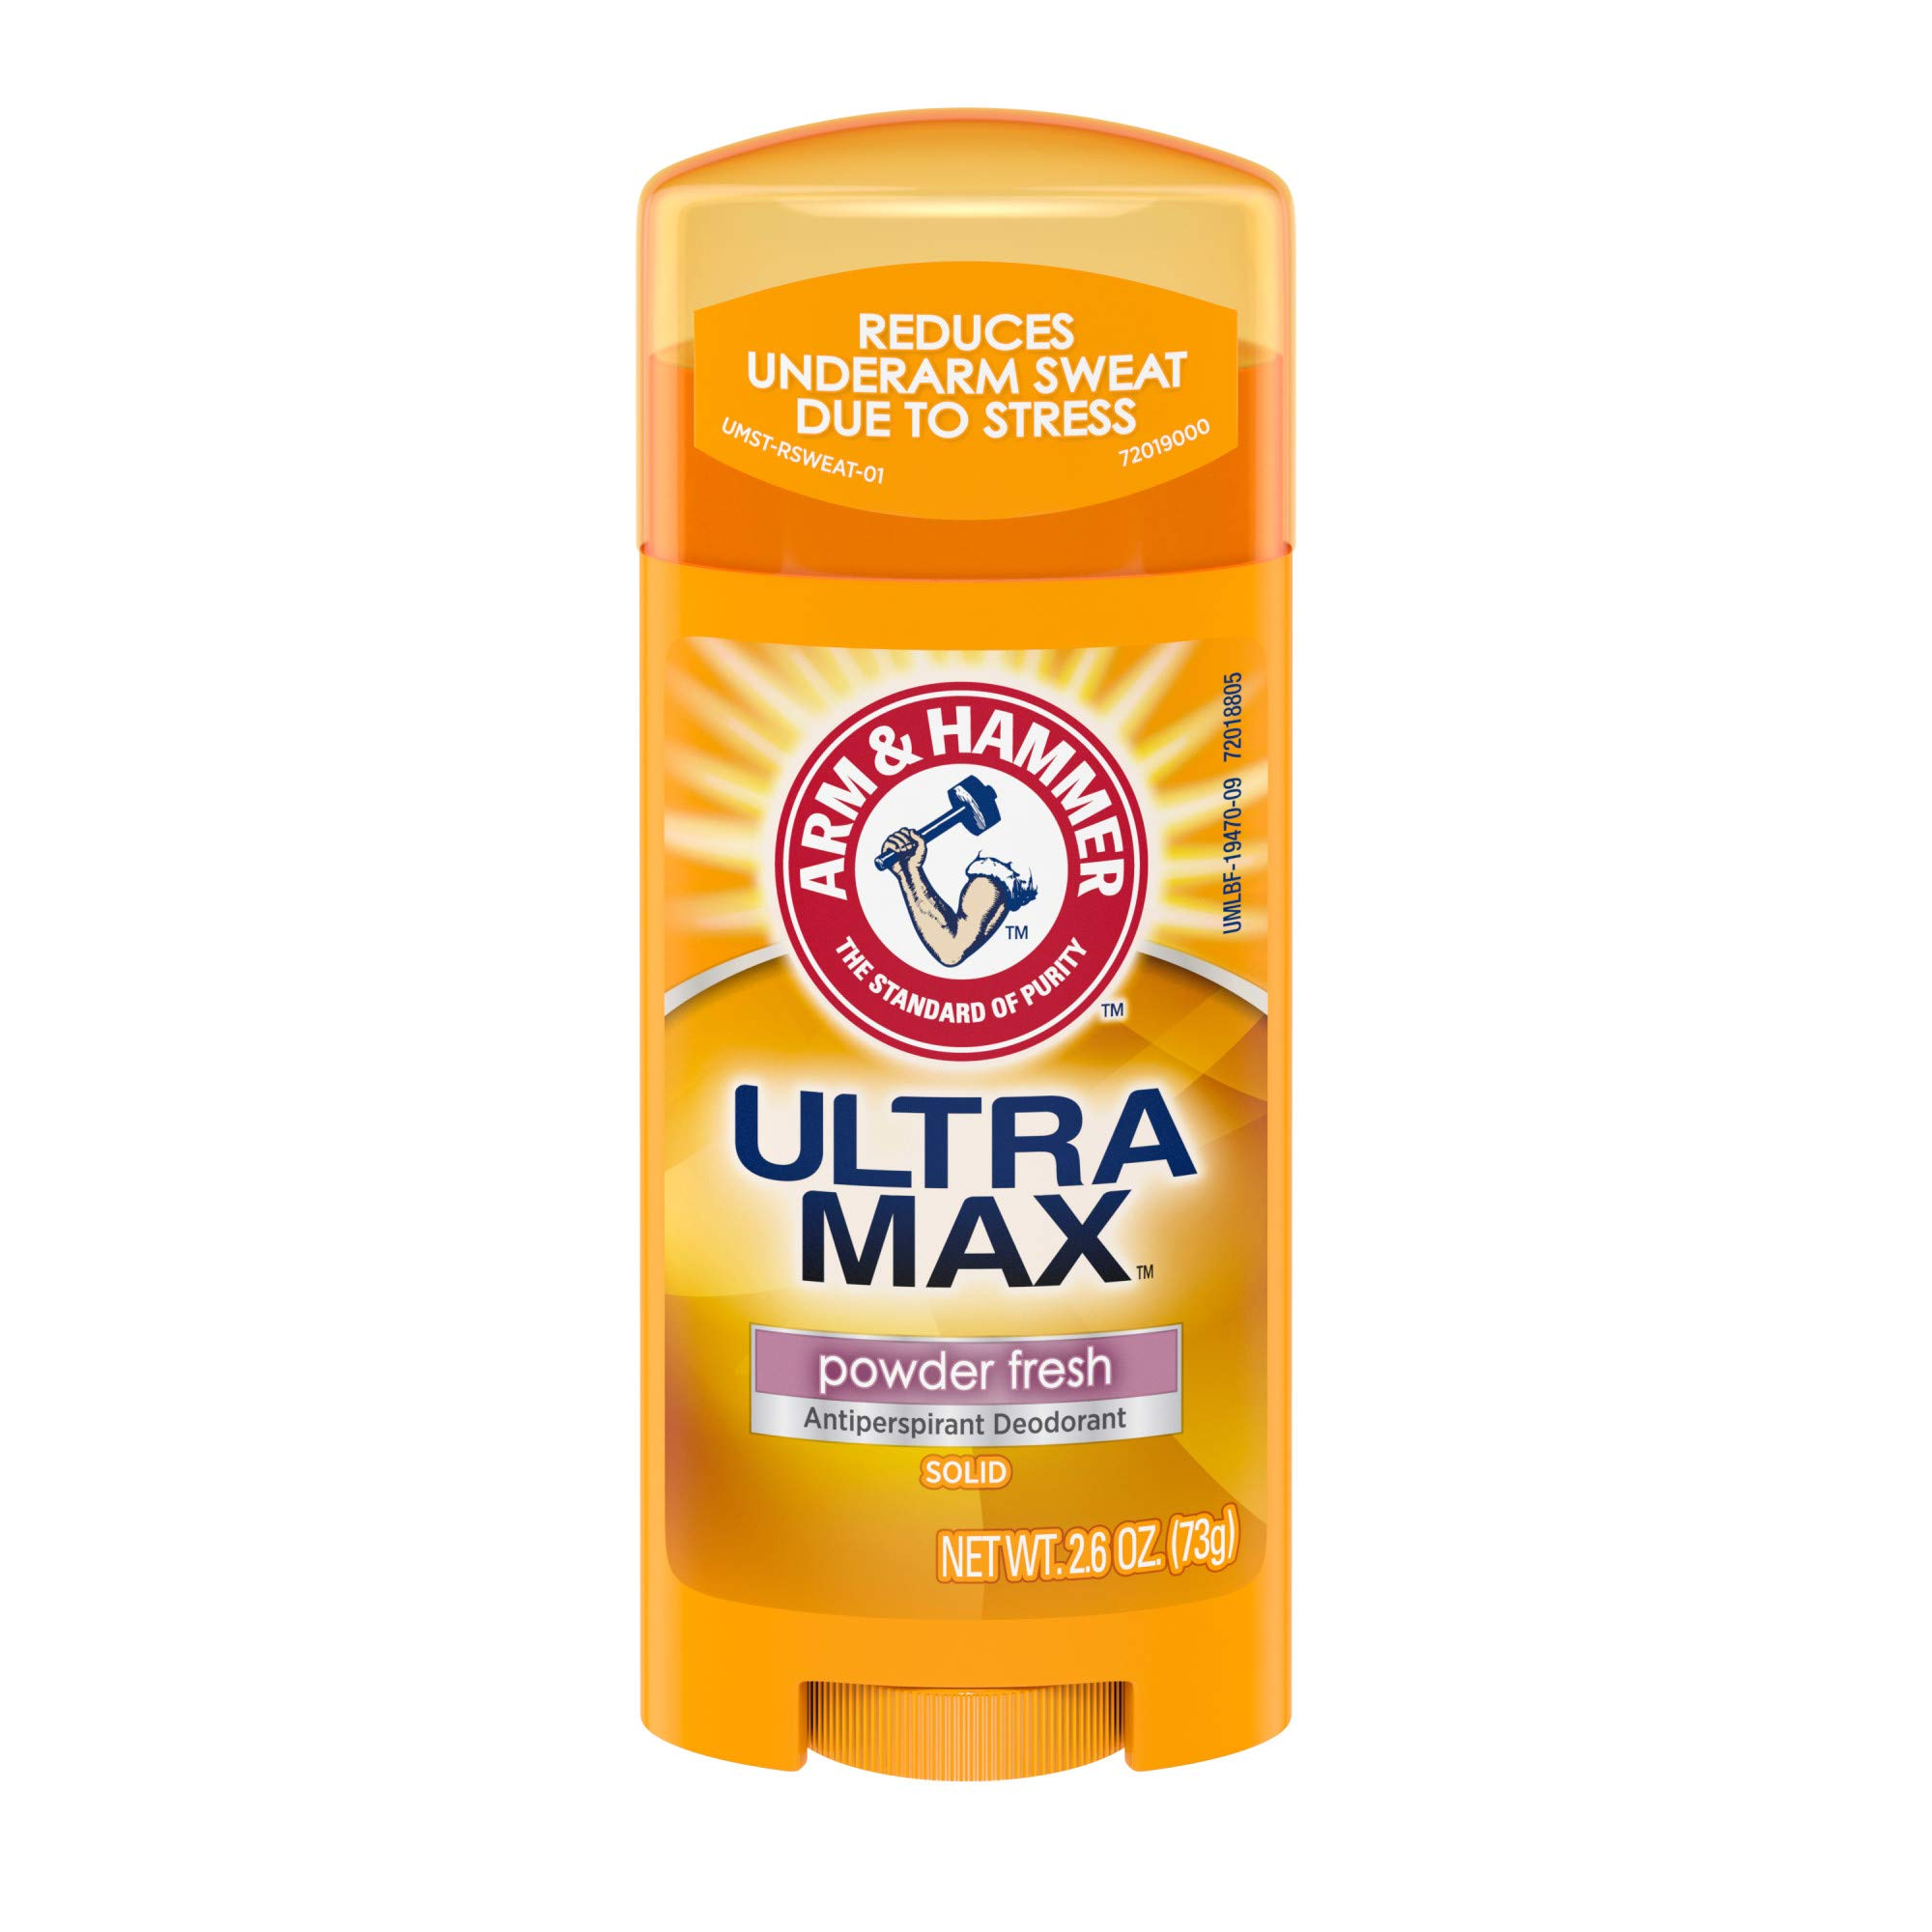 ARM & HAMMER ULTRA MAX Deodorant- Powder Fresh- Solid Oval - 2.6oz- Made with Natural Deodorizers (Pack of 6)